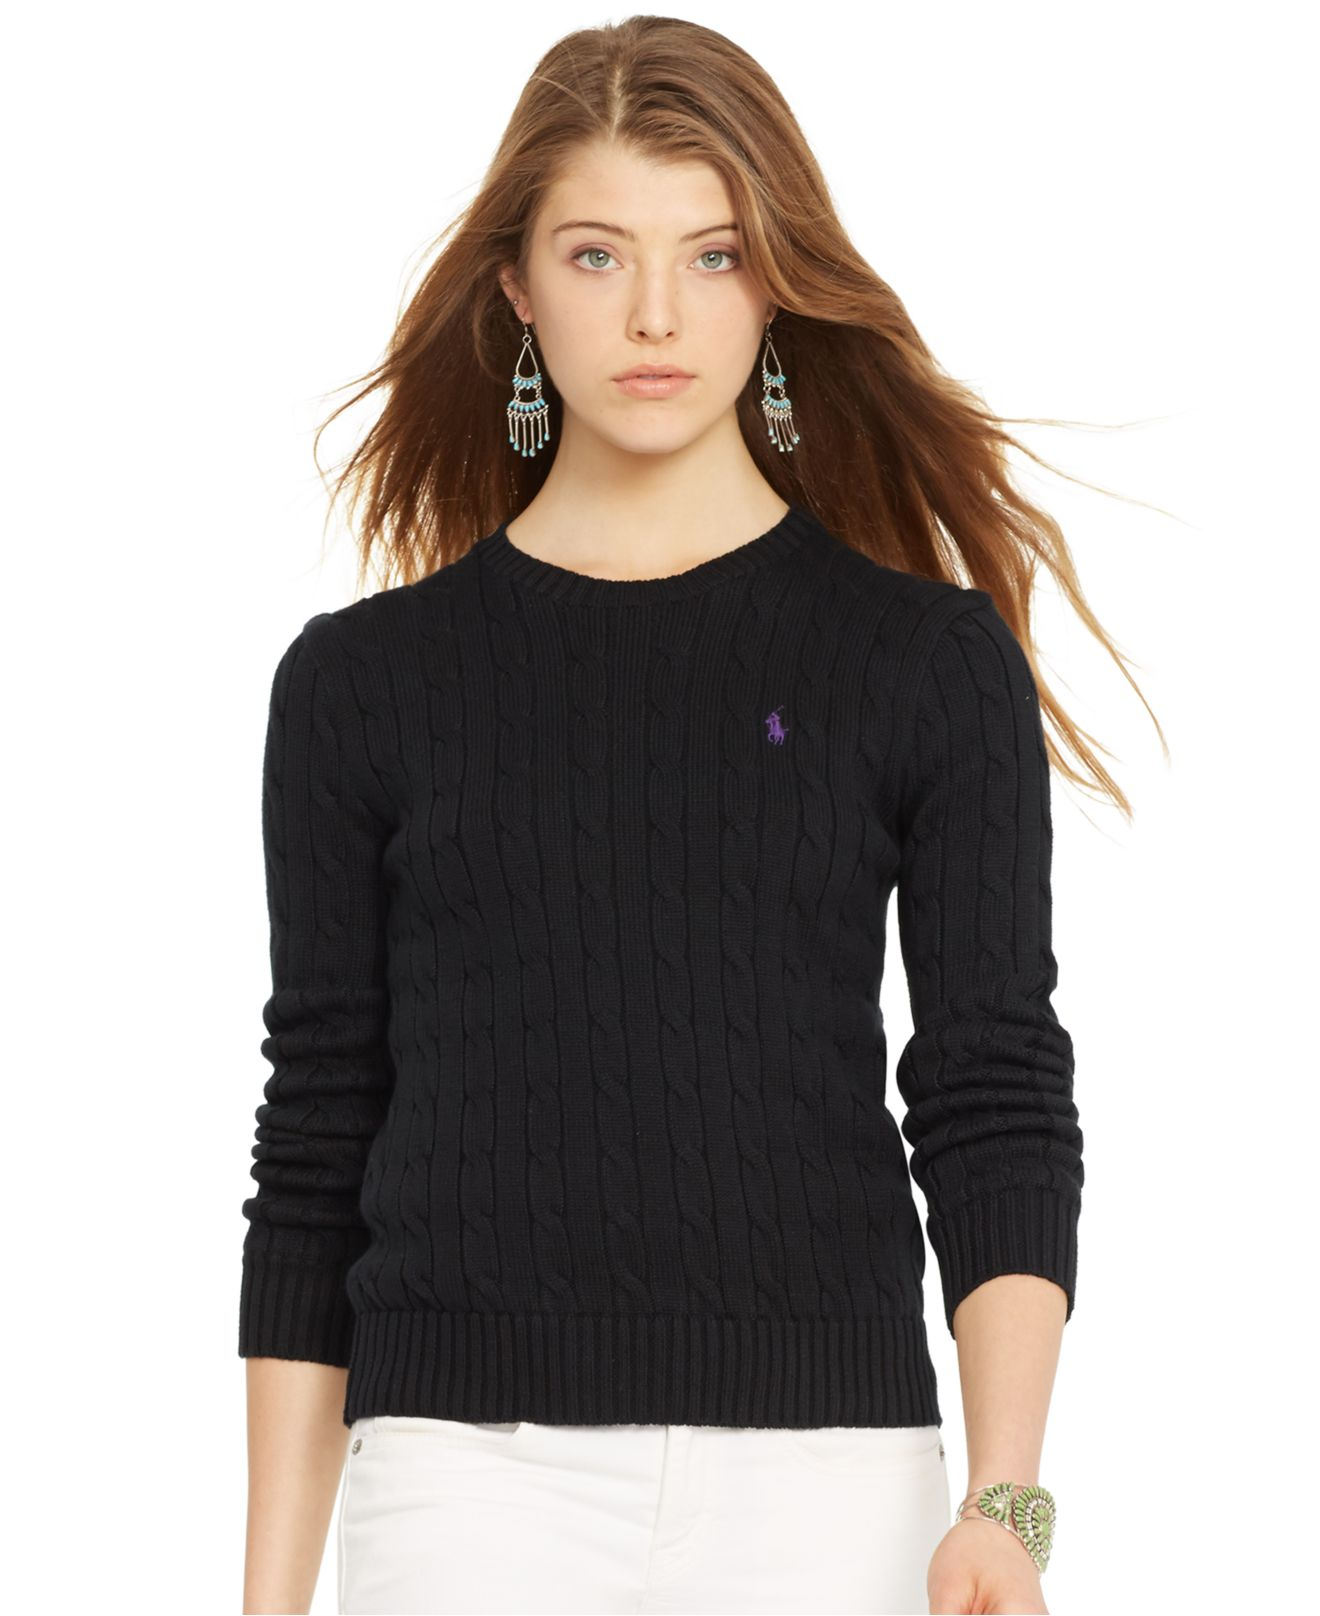 797cf1491 Lyst - Polo Ralph Lauren Crew-Neck Cable-Knit Sweater in Black